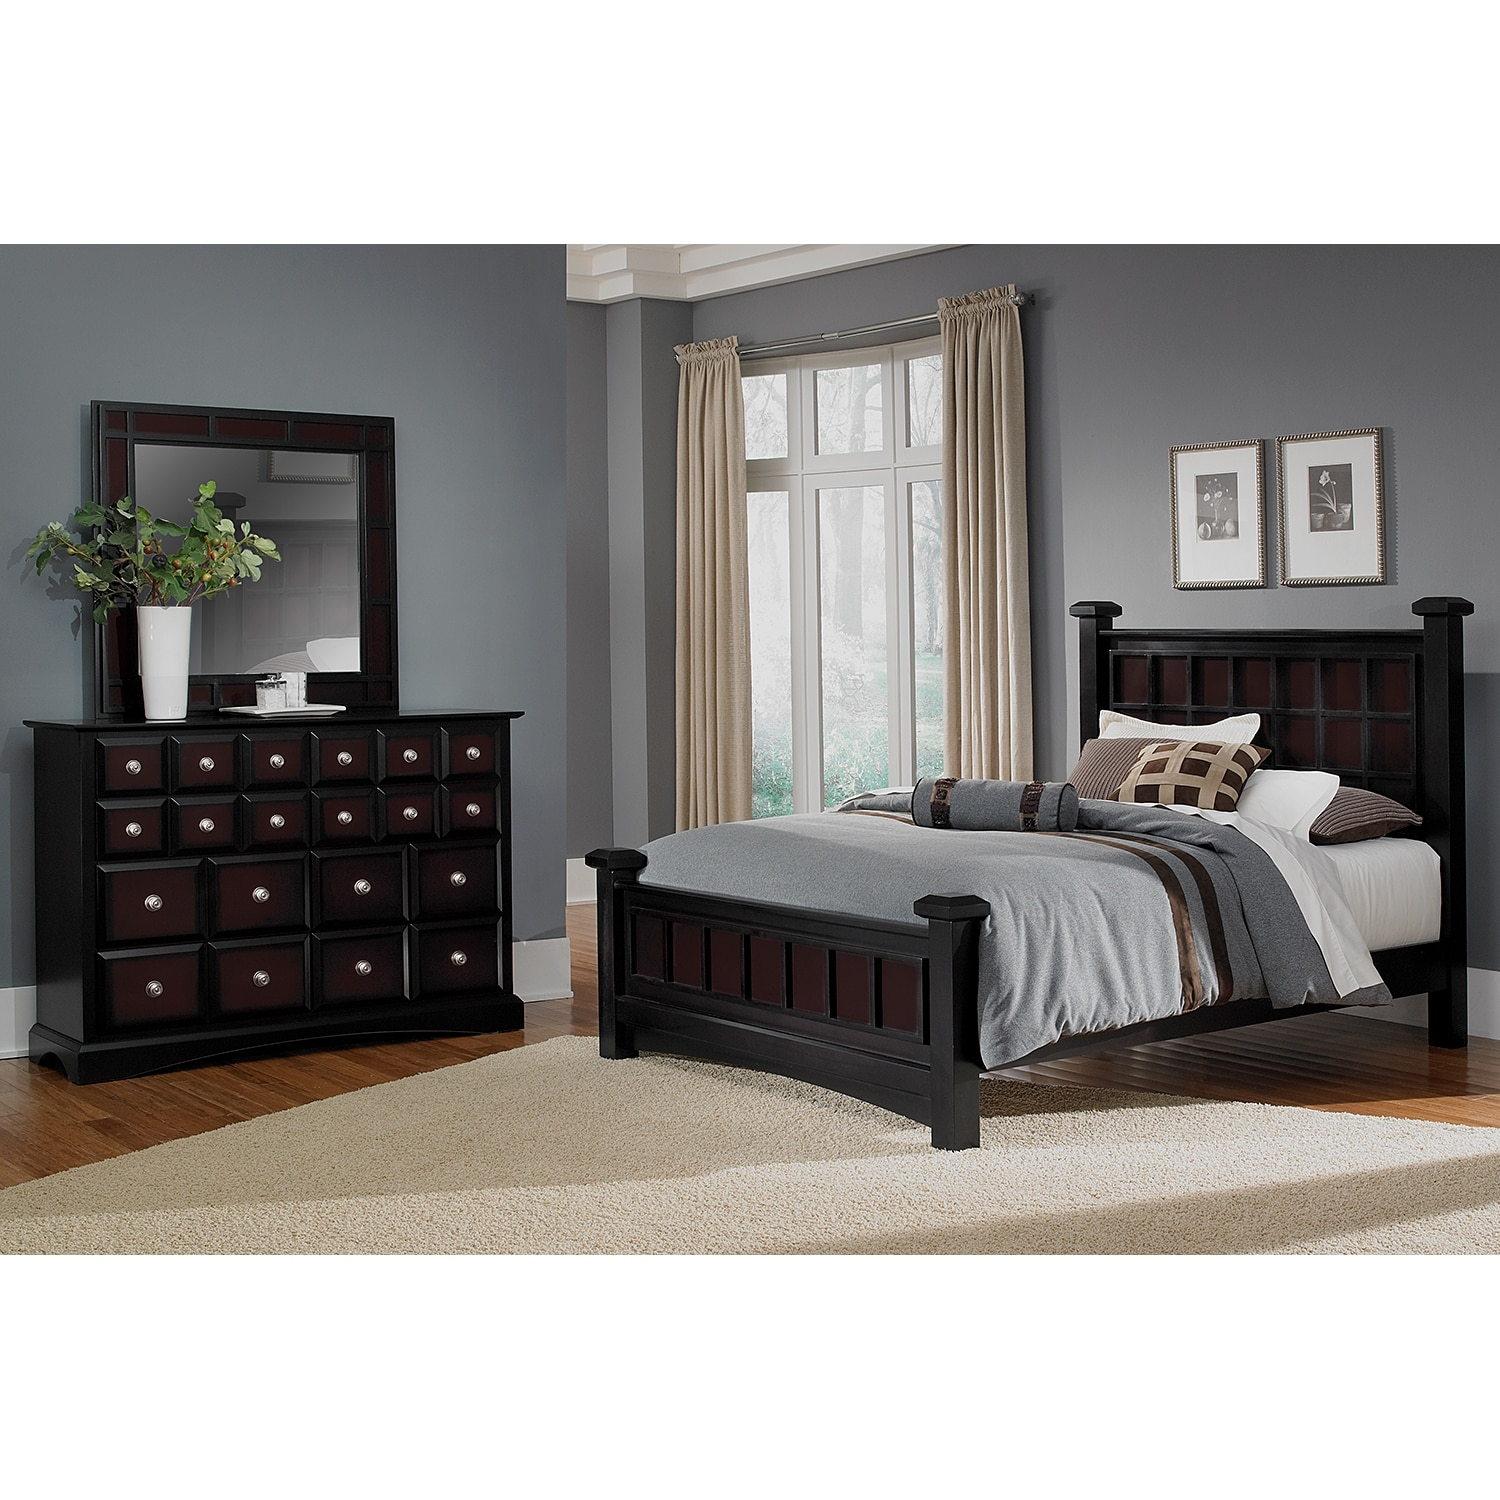 Winchester 5 Pc. Queen Bedroom